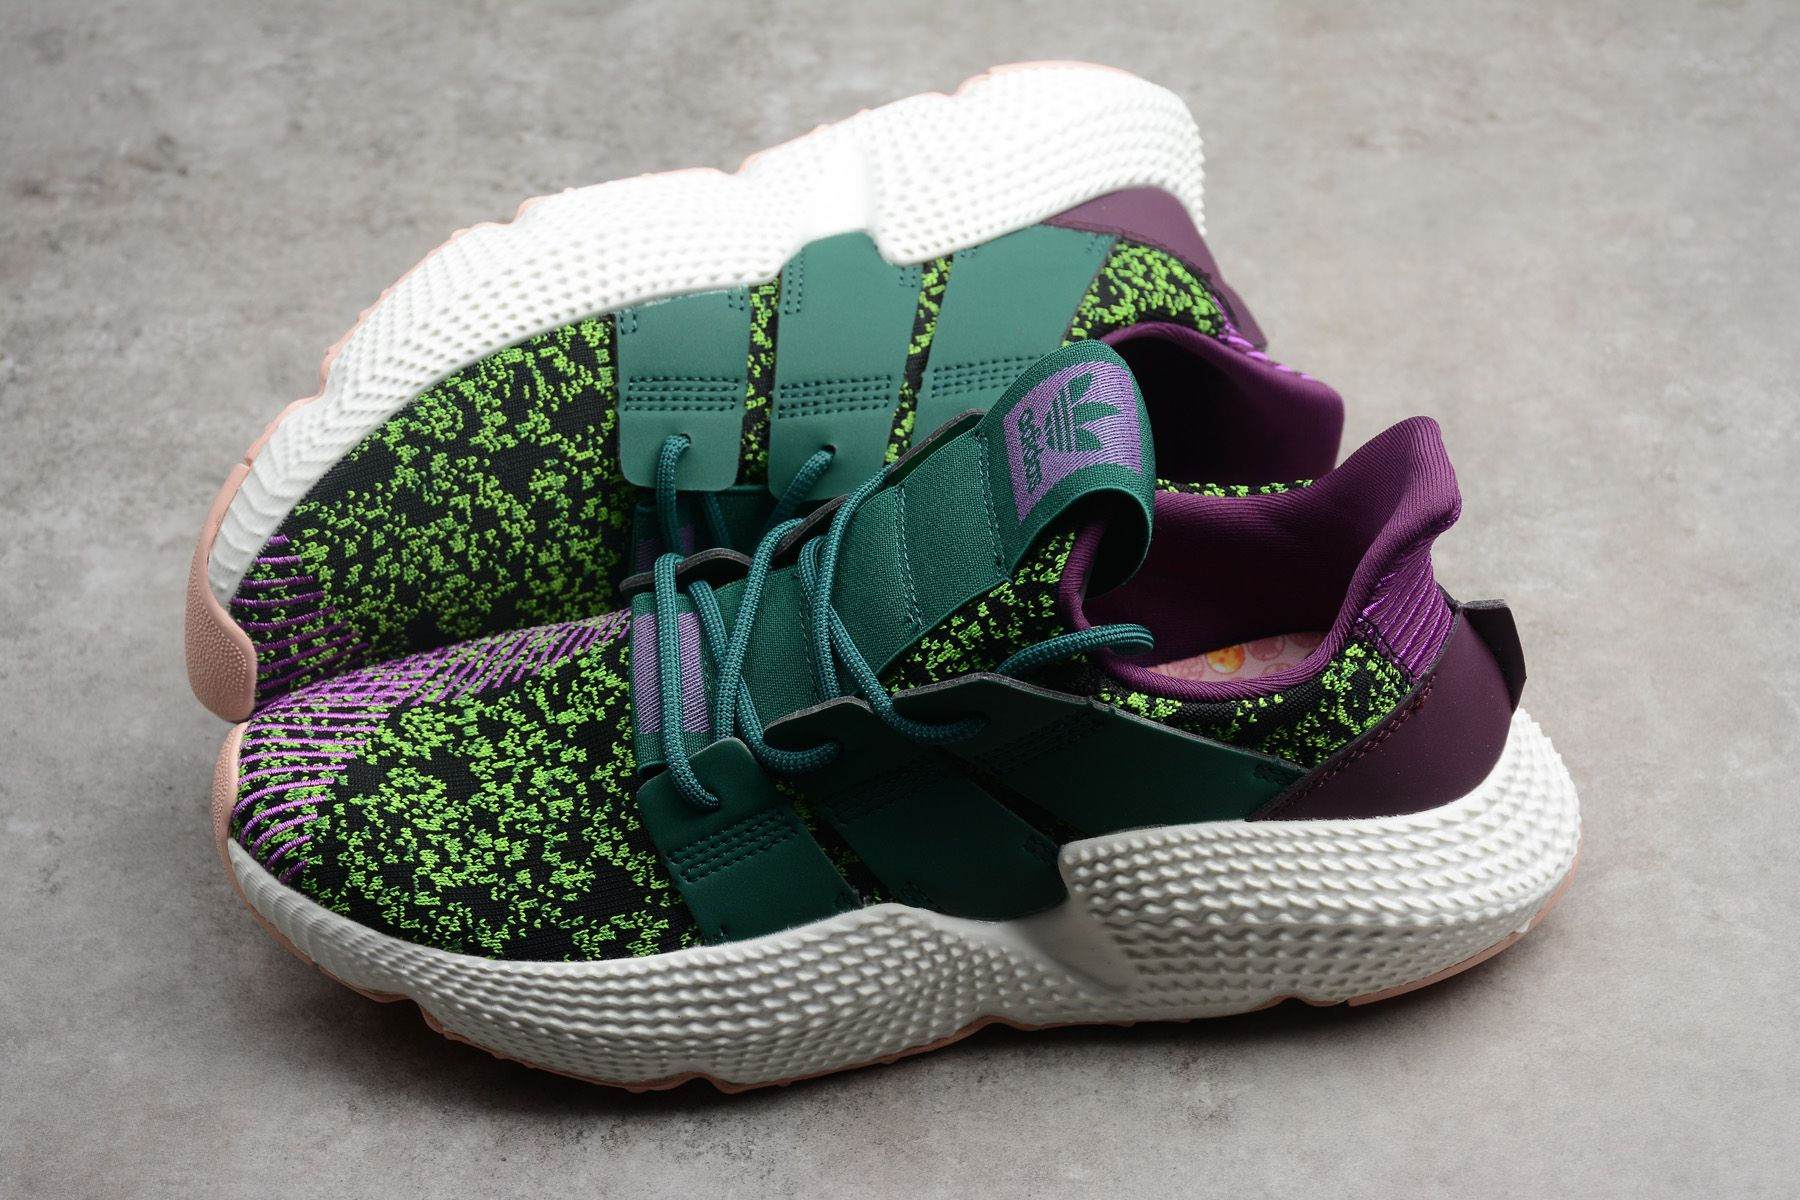 d8cd5b6fa 2018 Dragon Ball Z x adidas Prophere Cell D97053 shoes For sale online pre  order